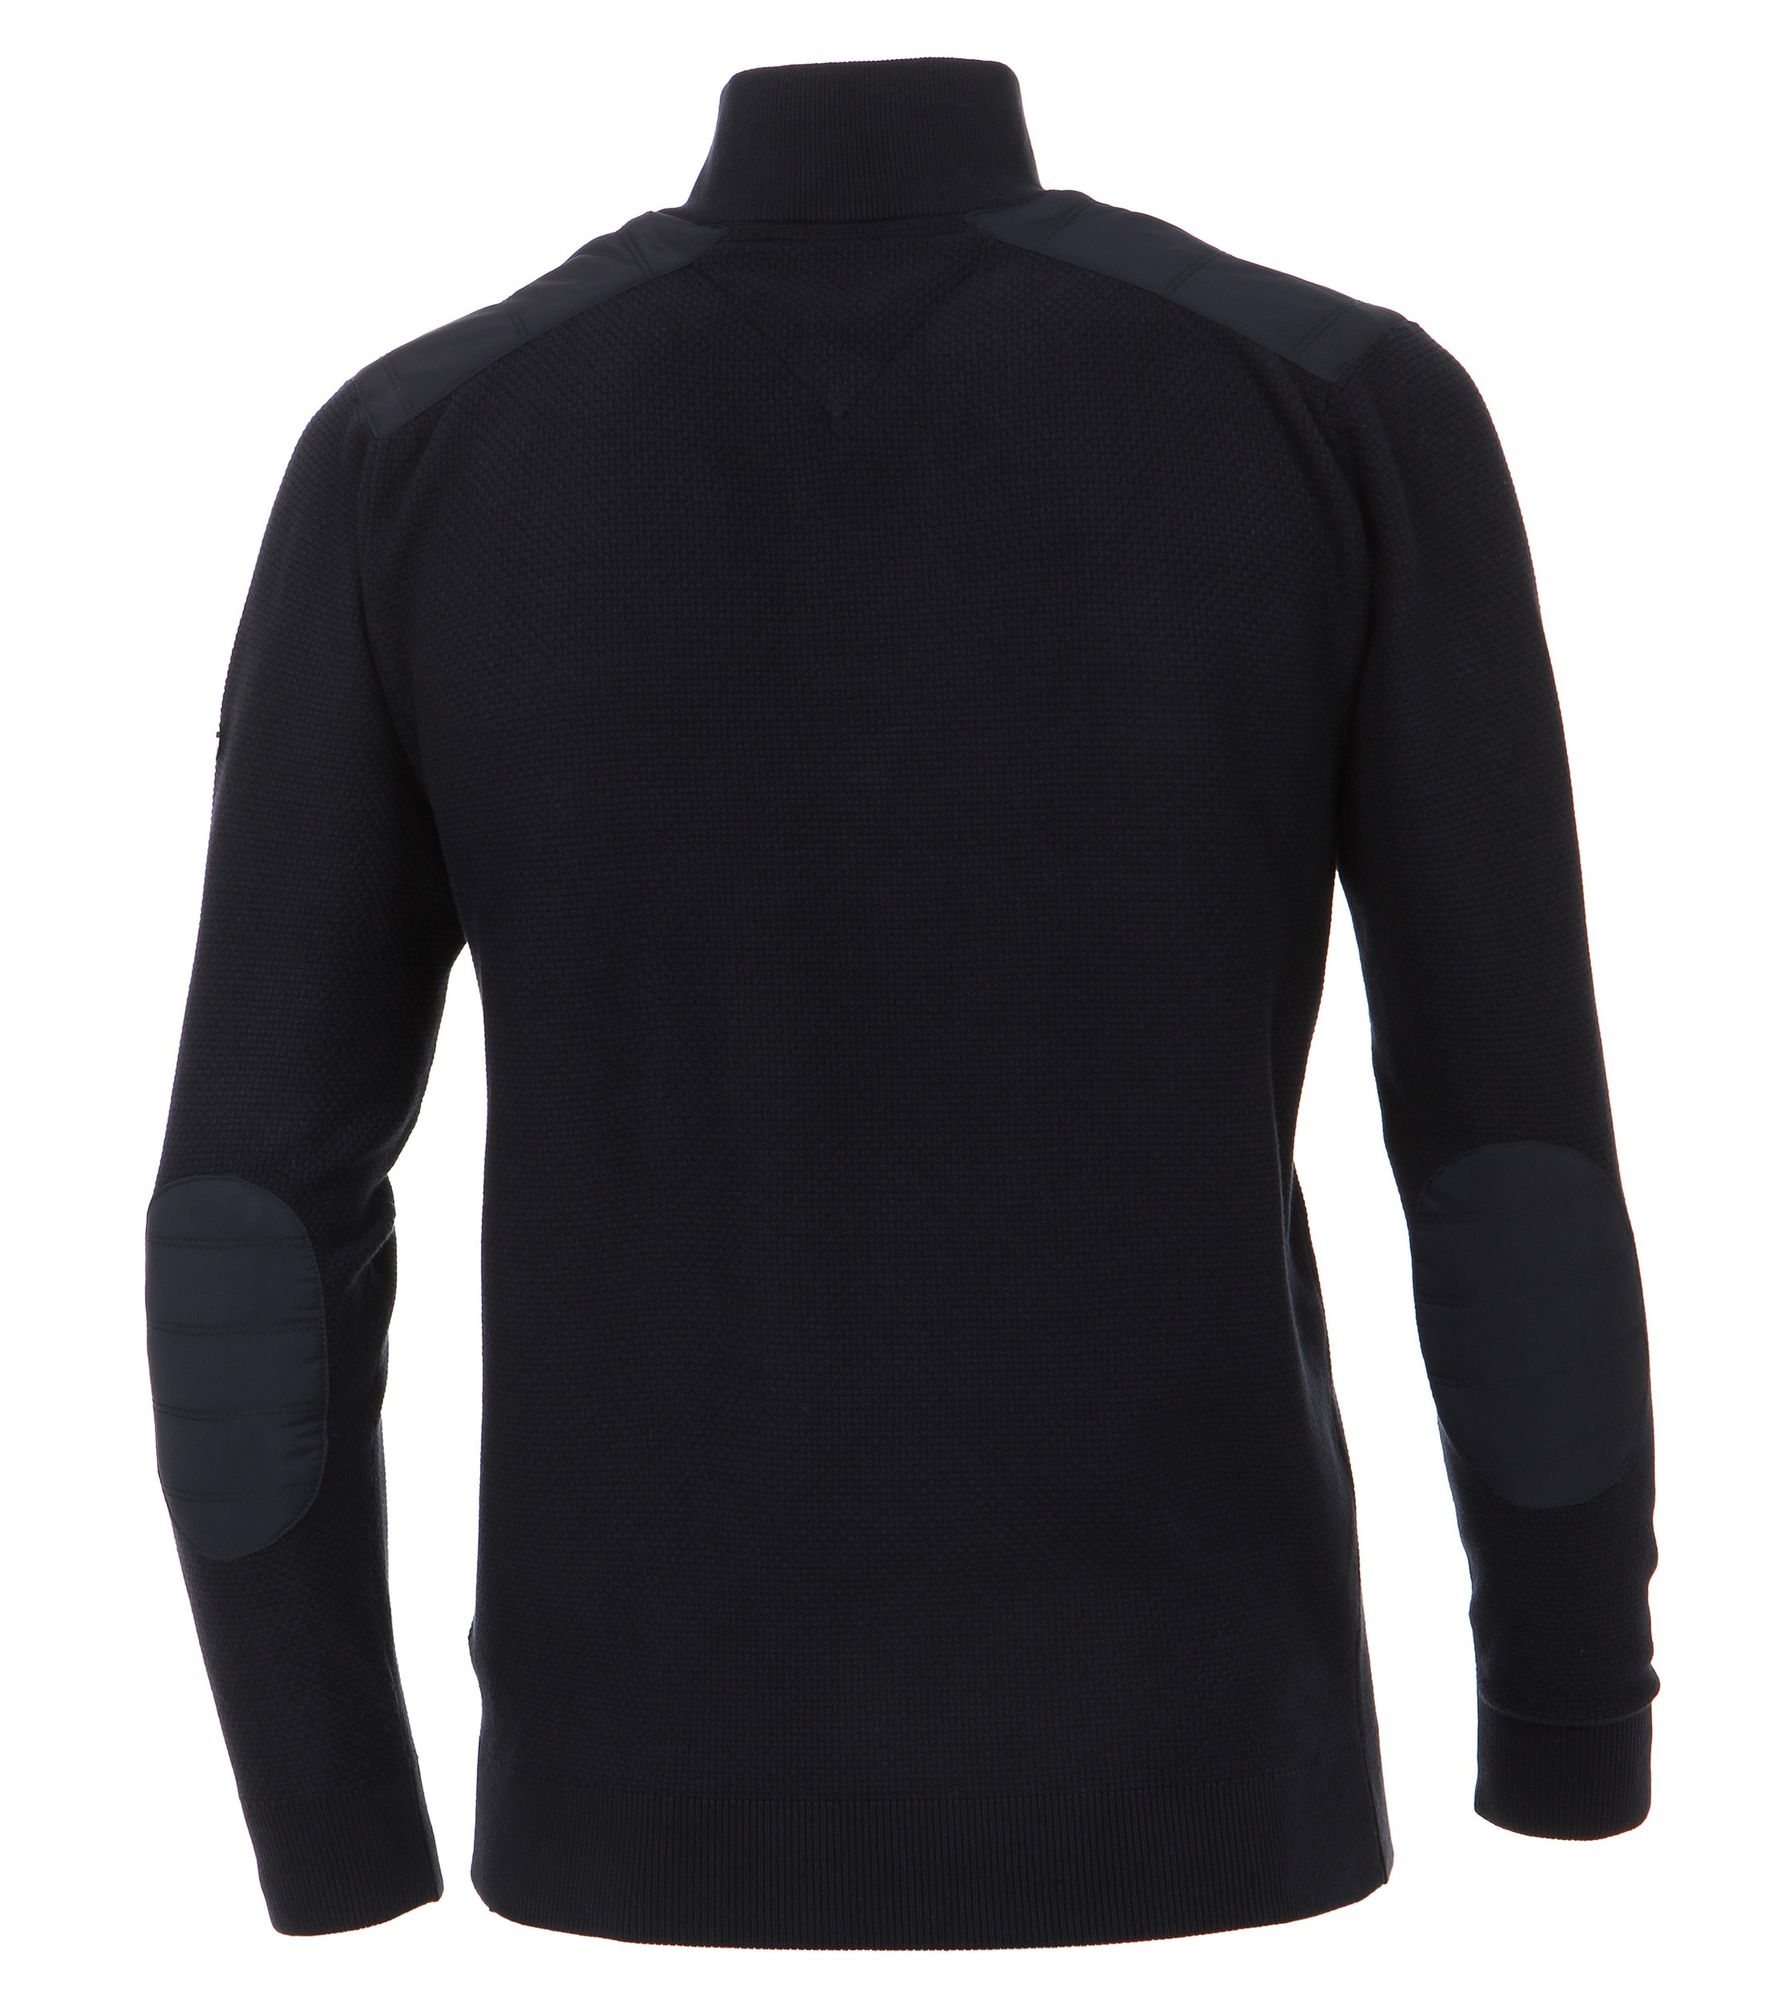 new product be08e 2964d Casa Moda - Herren Sweat-Troyer mit Stehkragen in Blau aus 100% Baumwolle  (472779800A)